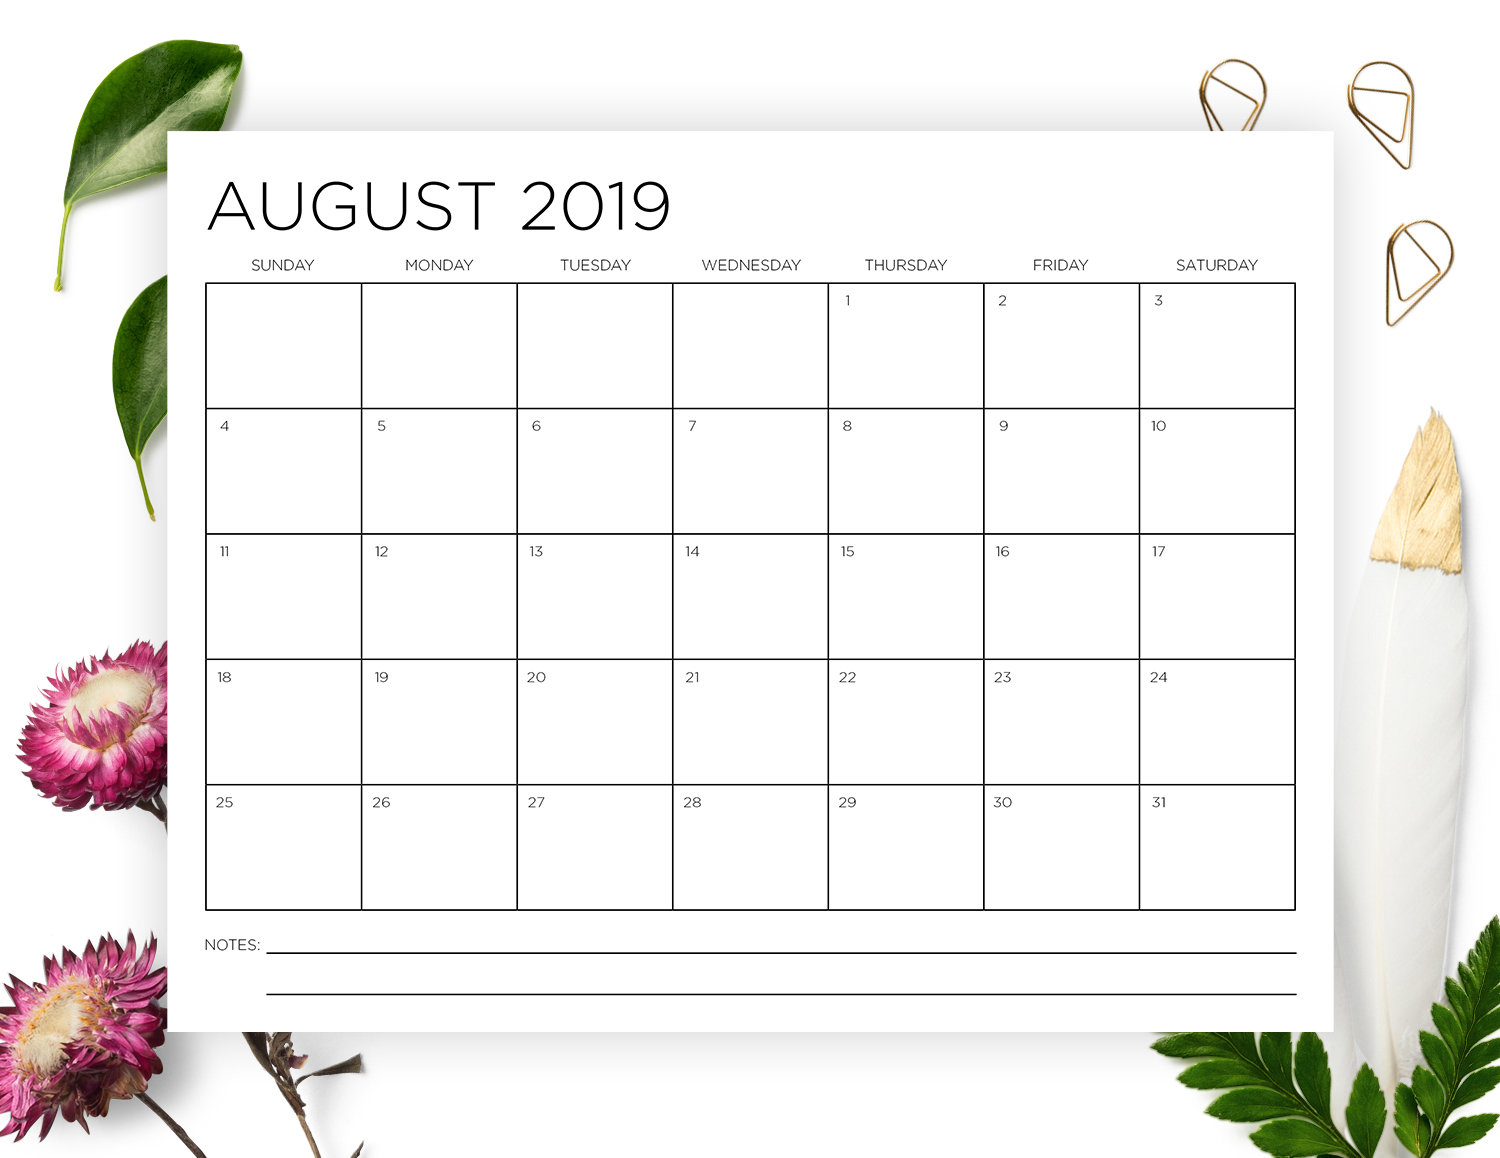 8.5 X 11 Inch 2019-2020 Calendar Template | Instant Download | Thin Sans  Serif Type Monthly Printable Minimal Wall Calender | Print Ready pertaining to 2020 Calendar 8.5 X 11